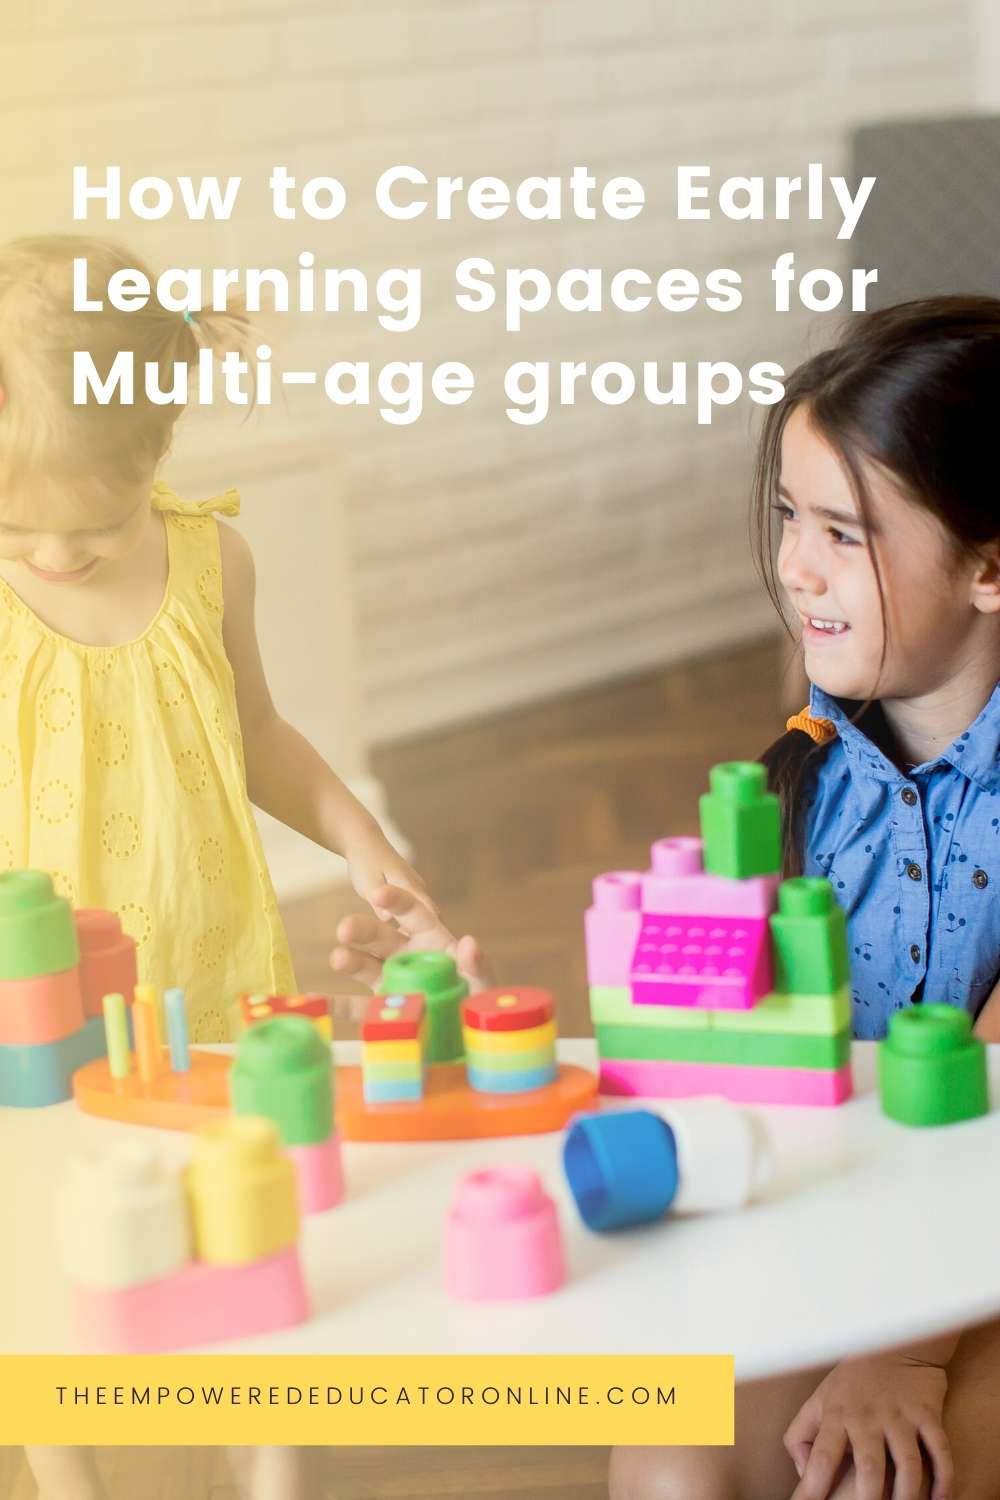 how to create Early Learning Spaces for multi-age groups